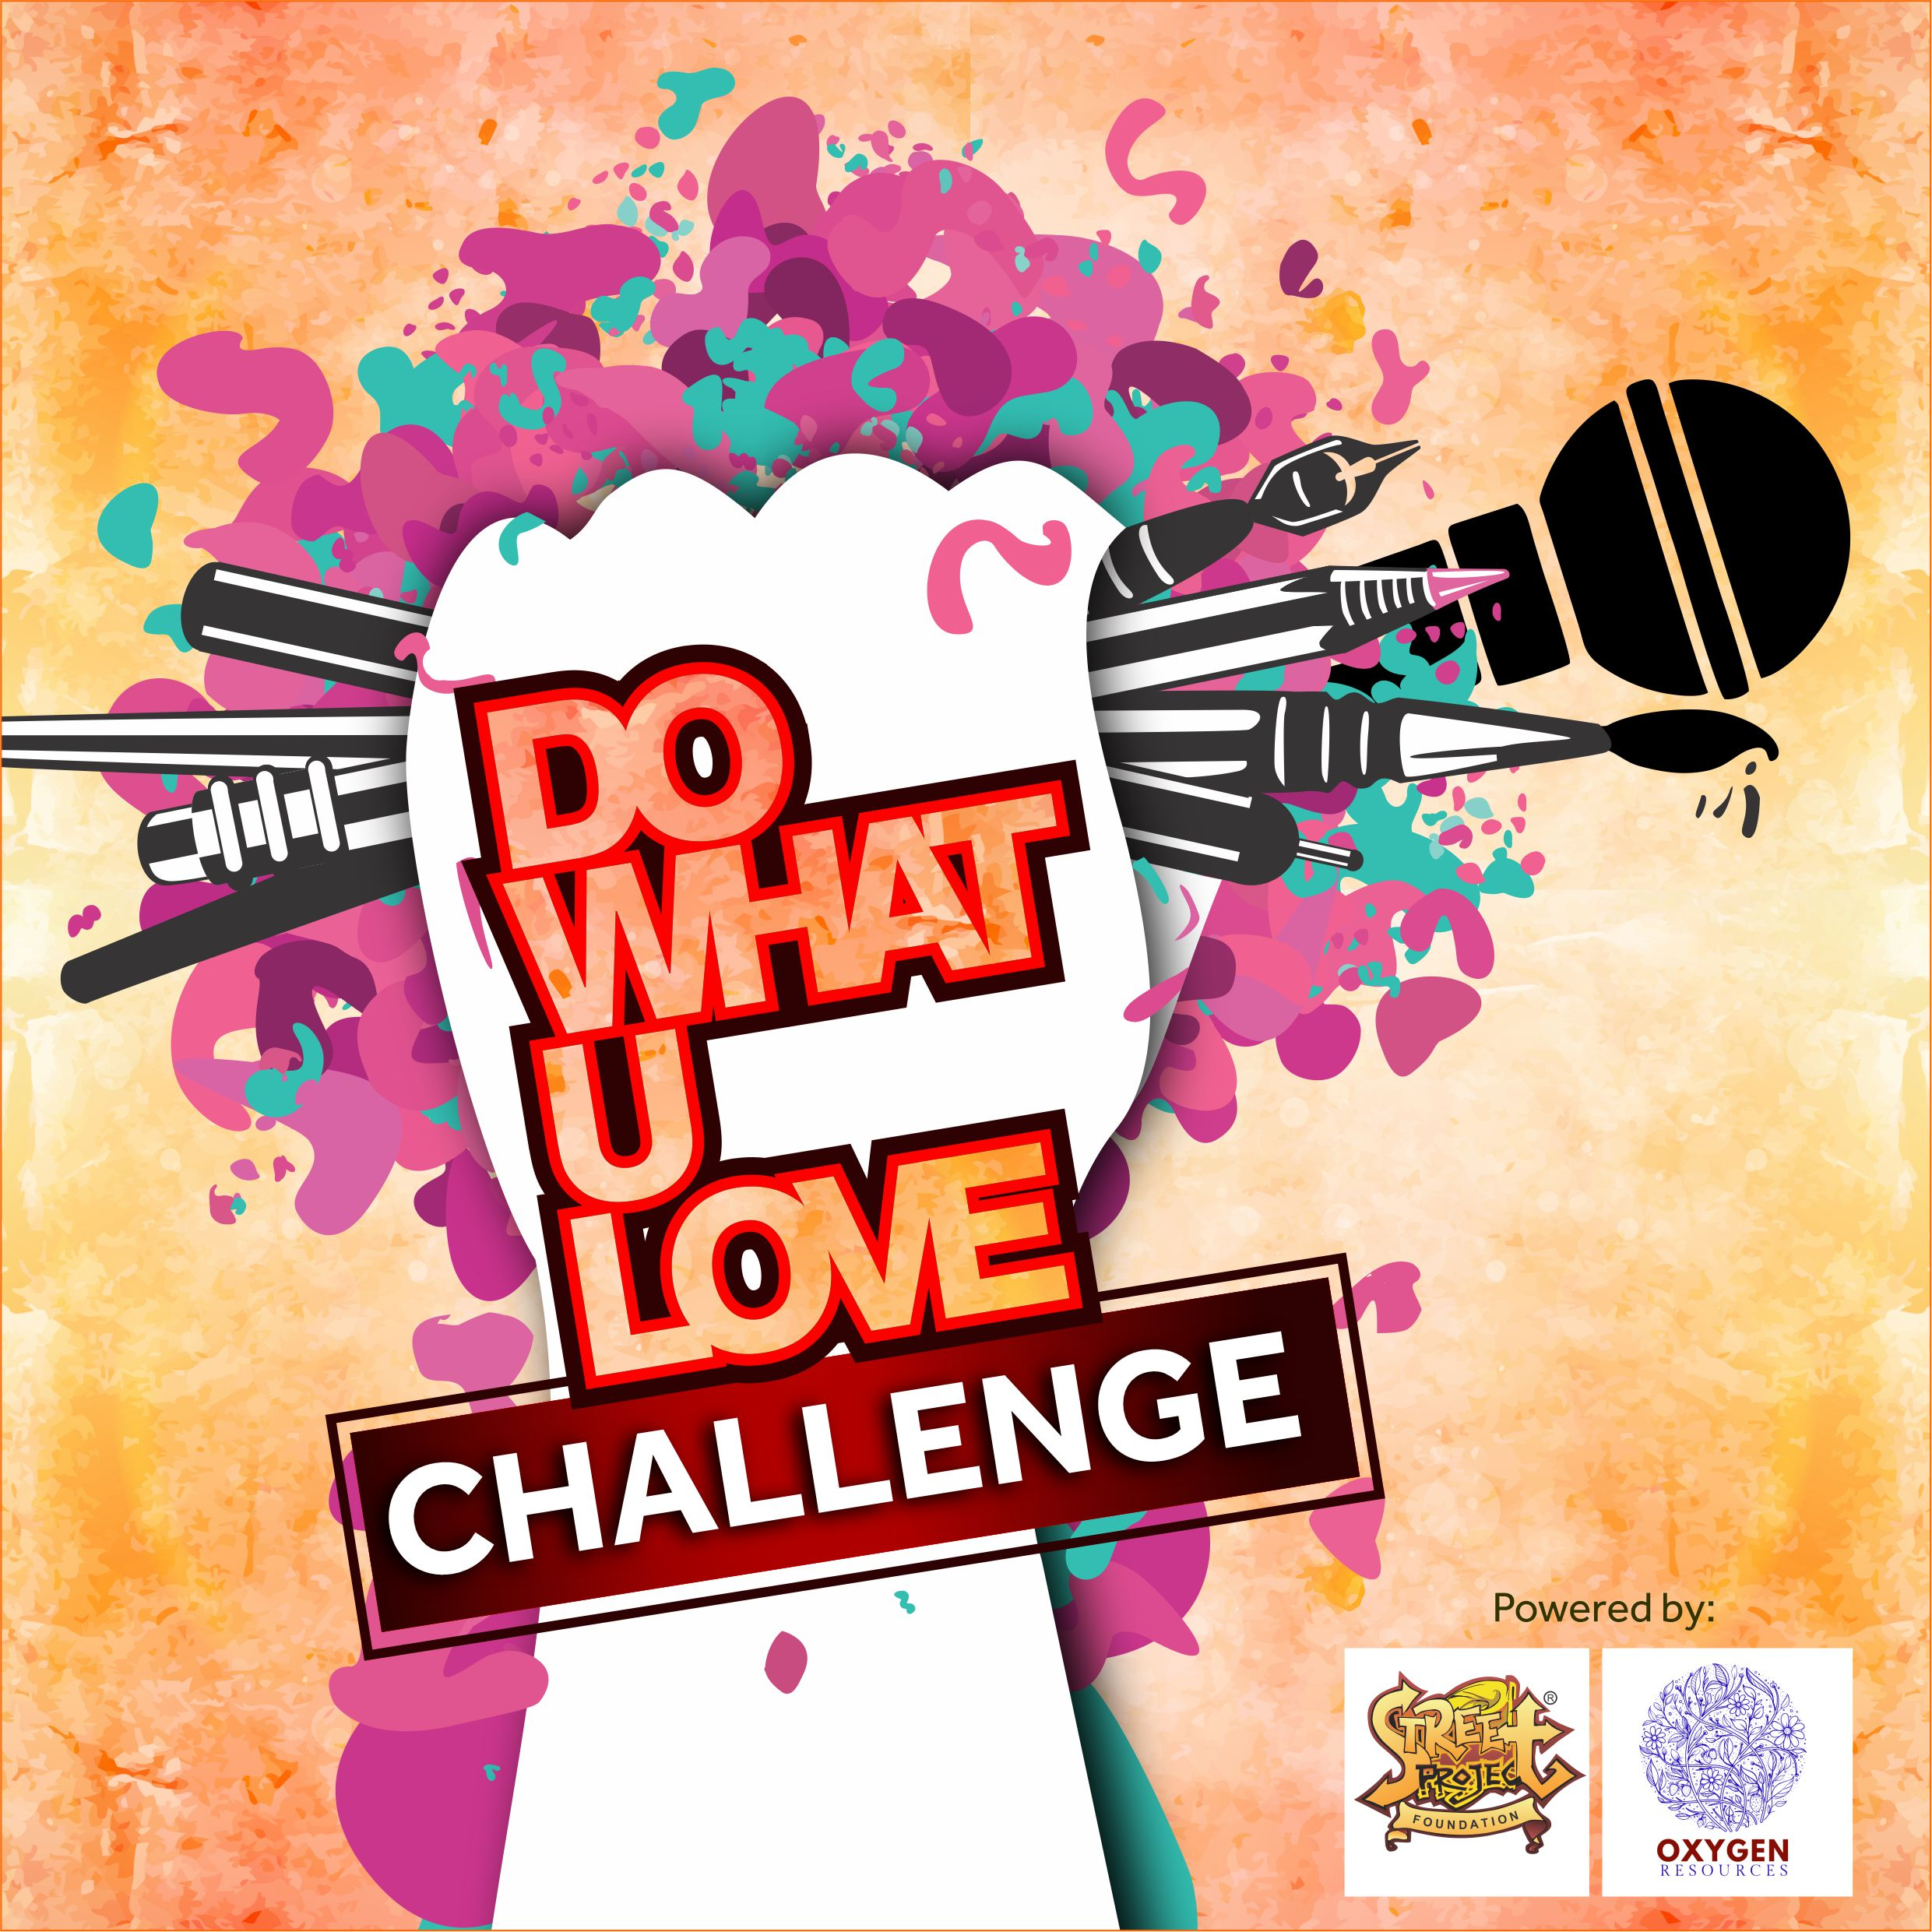 Do What U Love Challenge